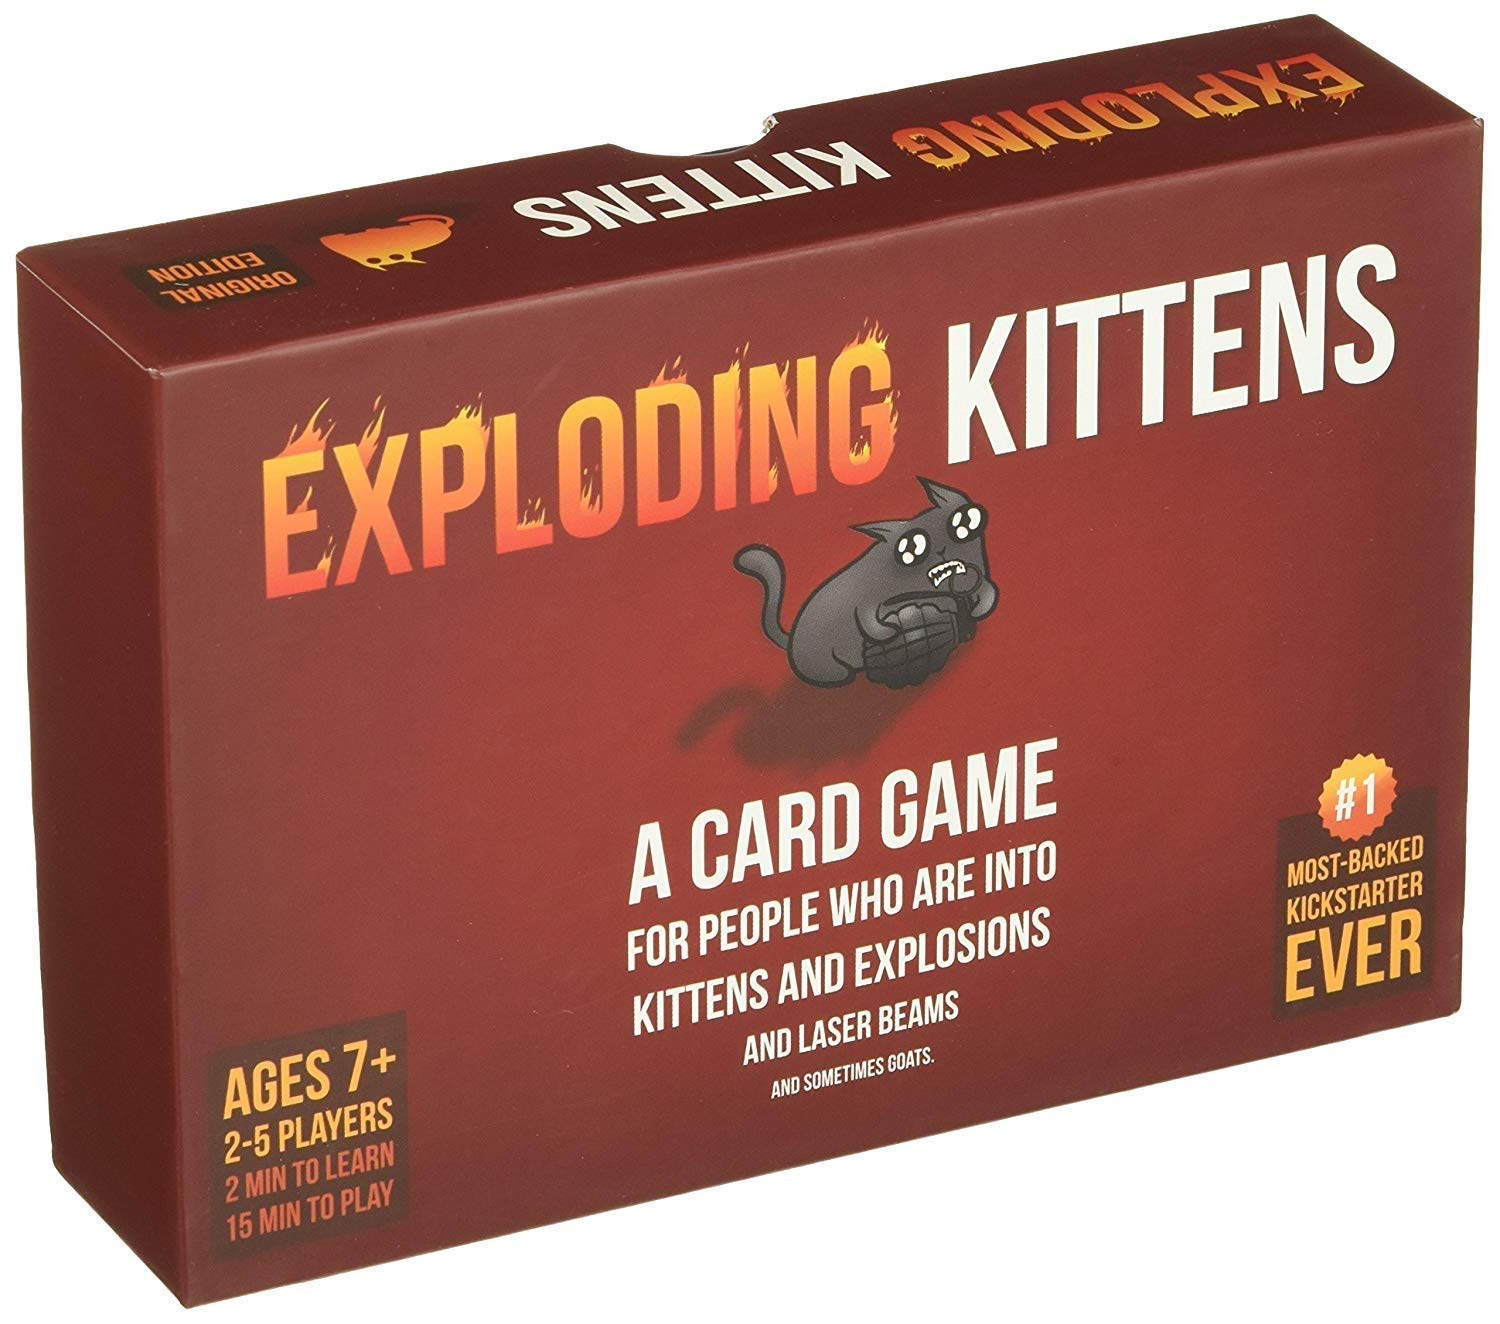 Exploding Kittens Card GamexFF0C;Board Games,Family Games,Card Games,Friend Games,Party Games,Exploding Kittens Expansion Suitable for Kids 8-12,Fam